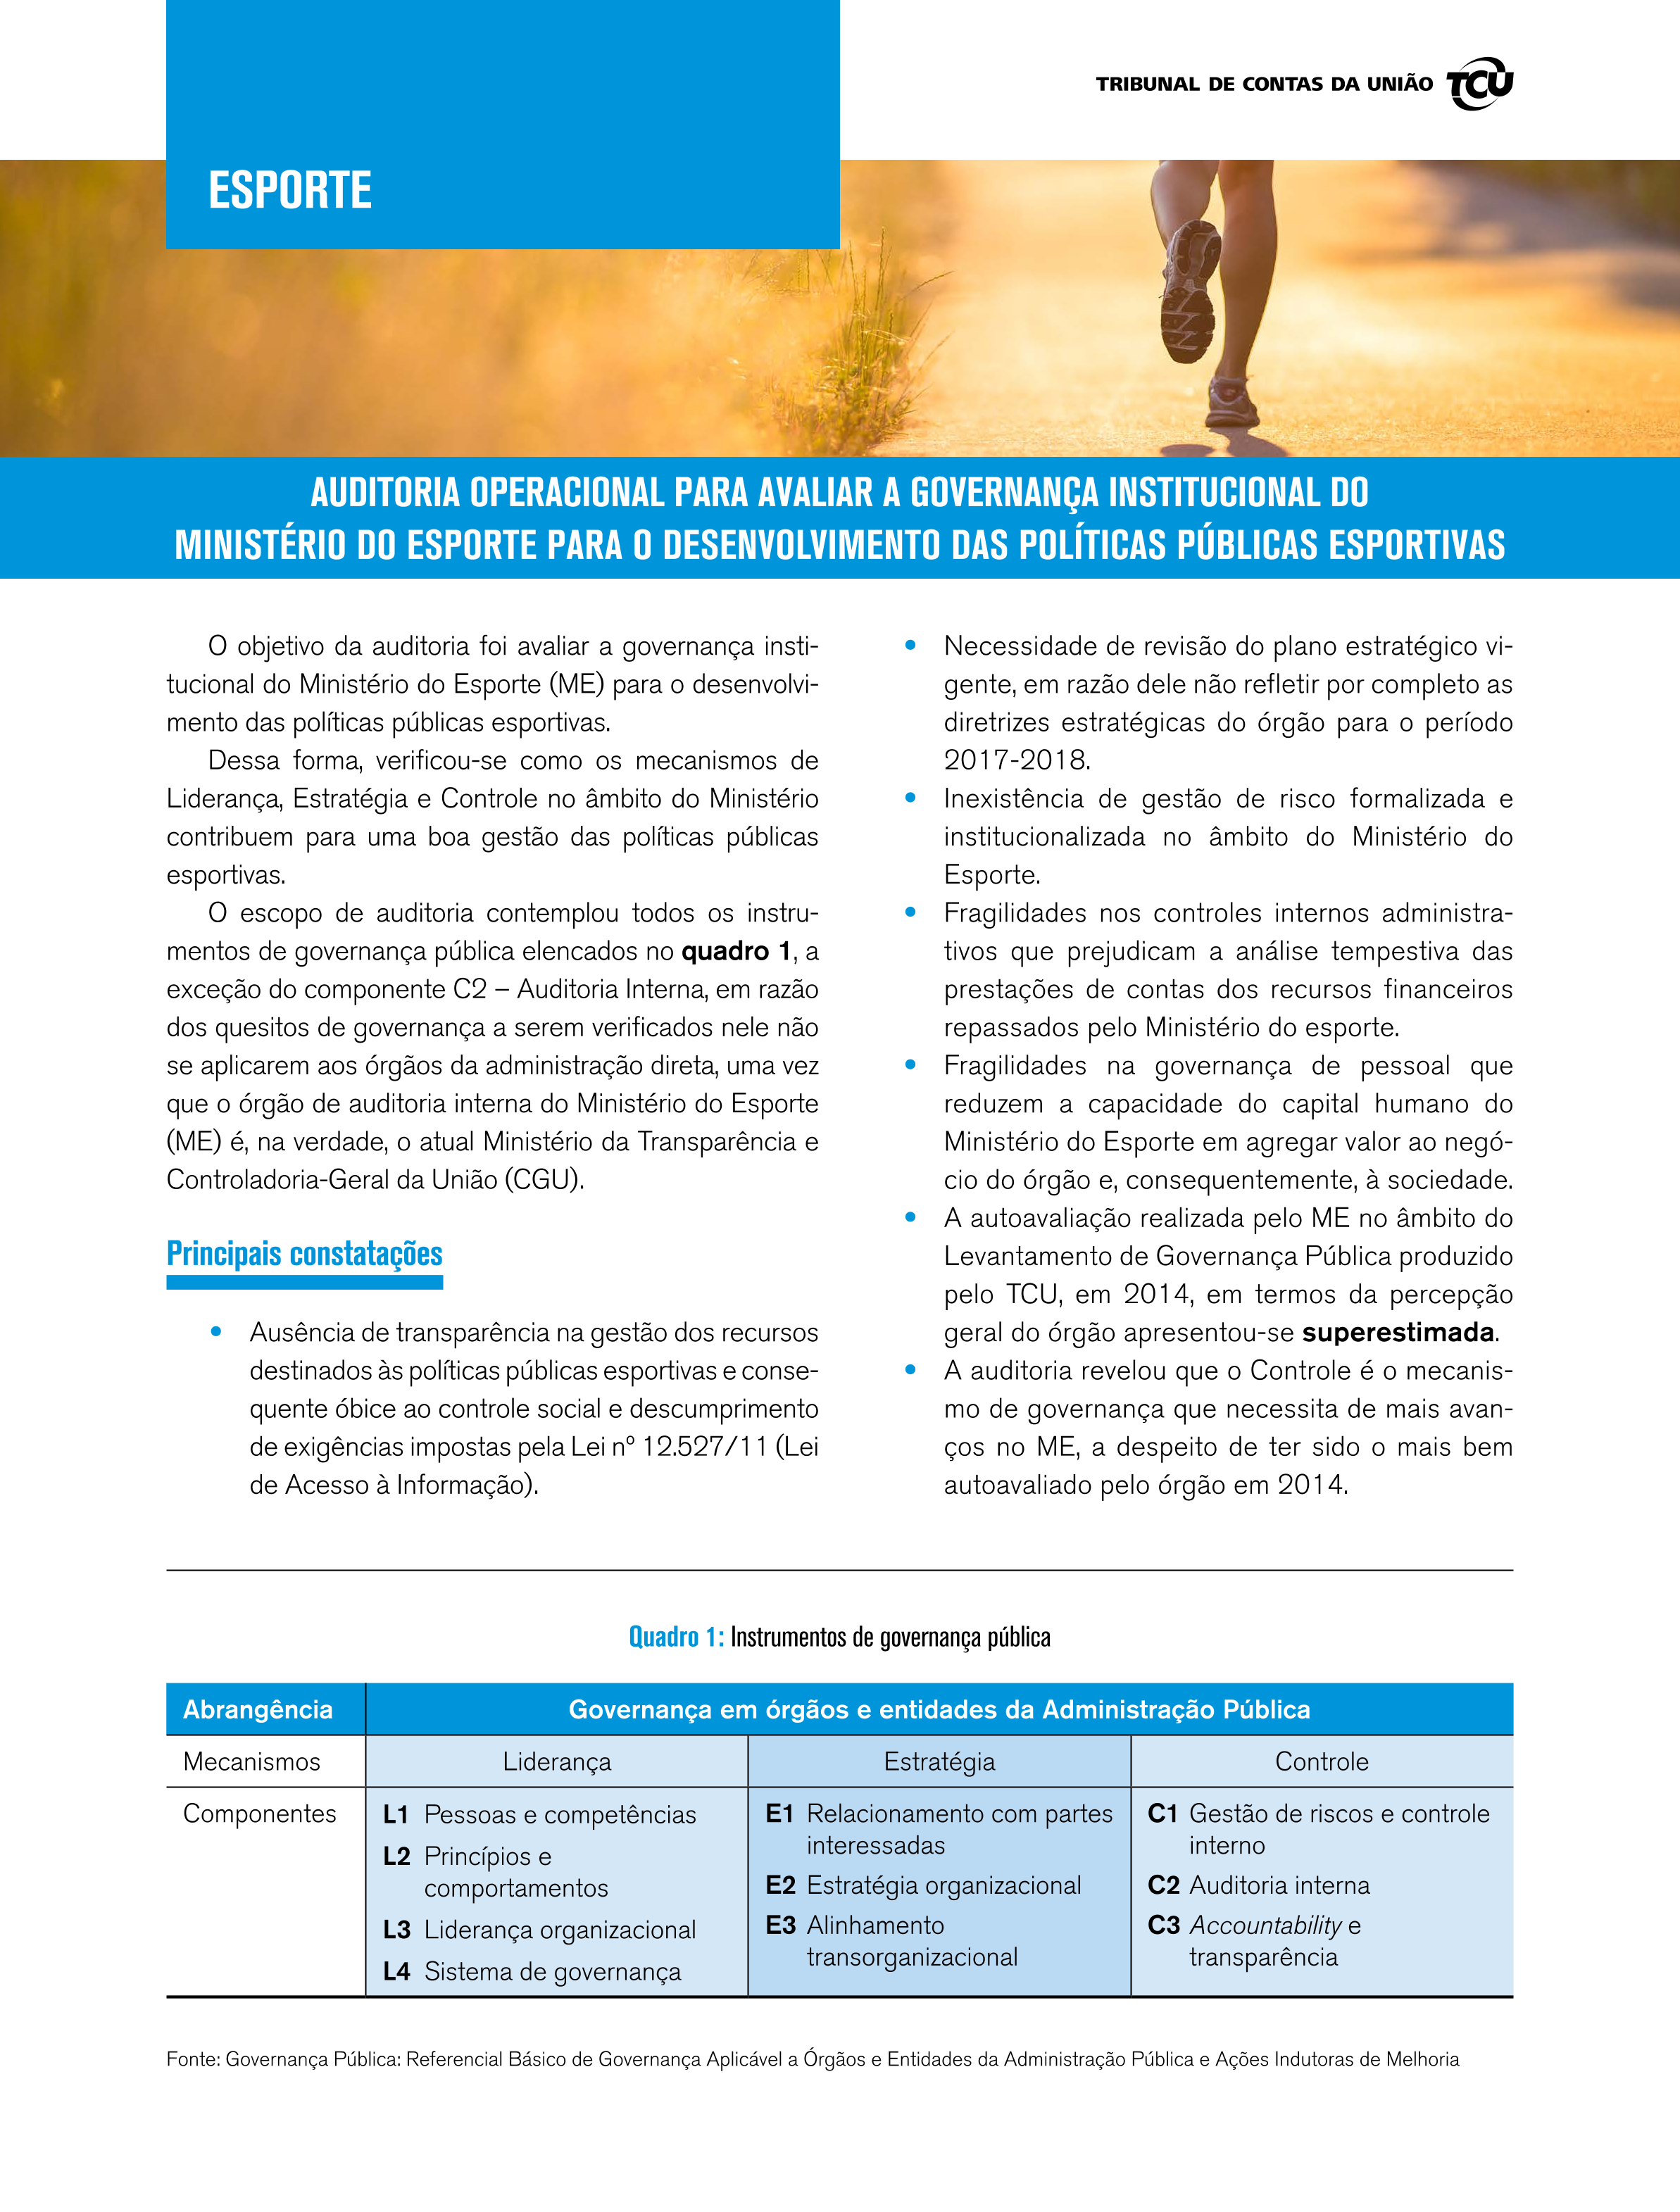 auditoria governanca me_web_v2.png